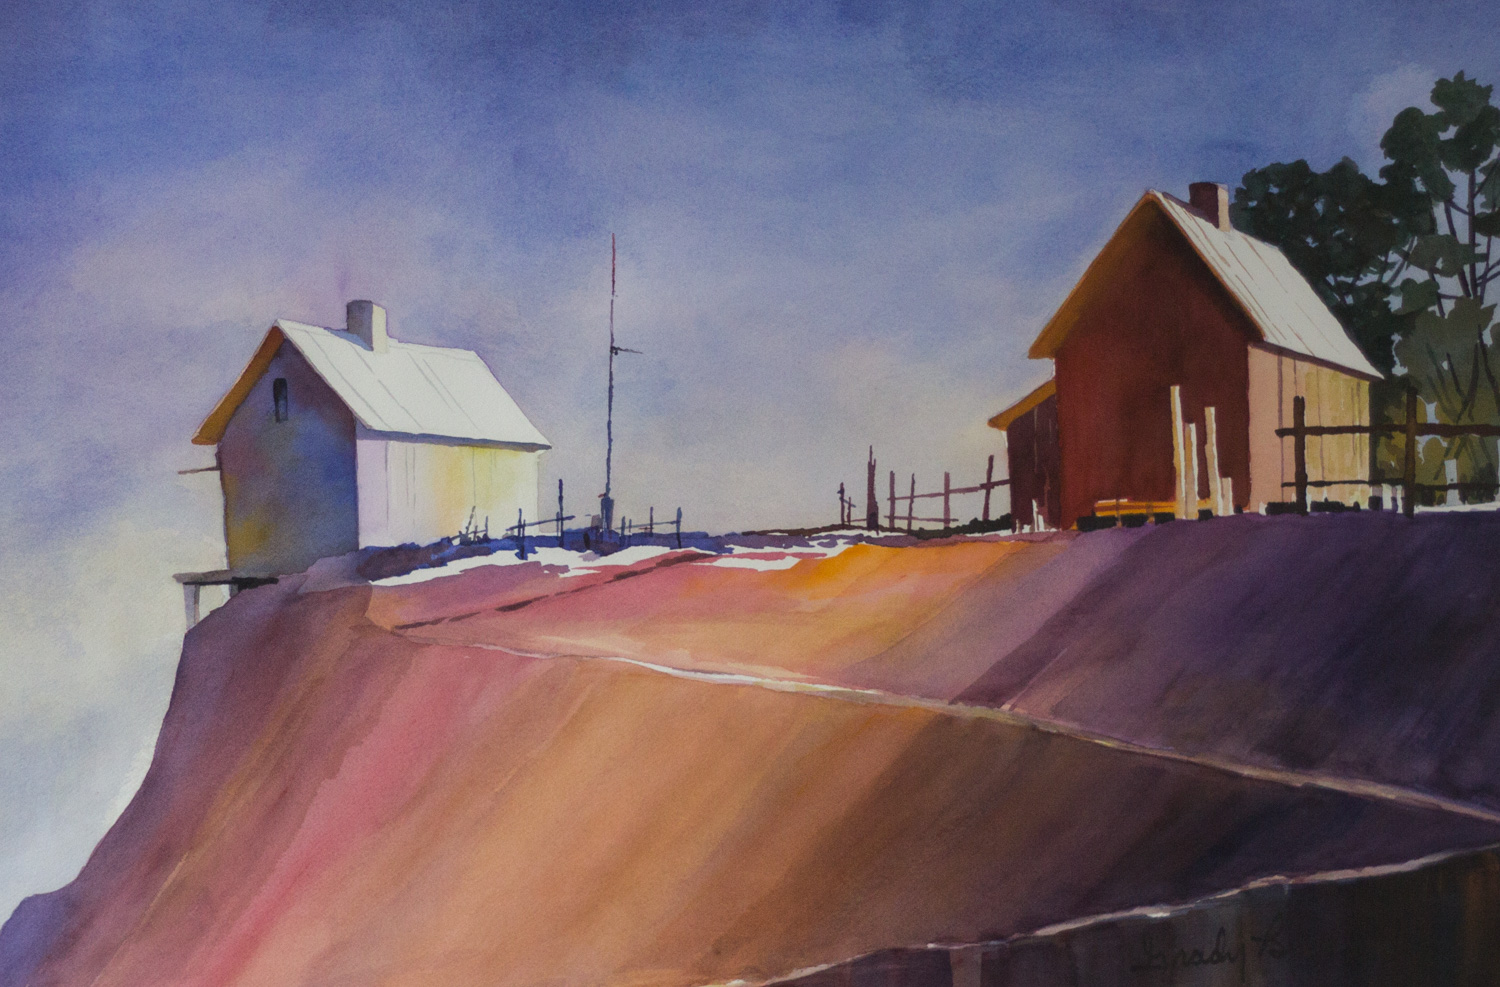 Low Tide, by Grady Barrow, Watercolor on Paper, Cheaha Exhibition Purchase Award Winner